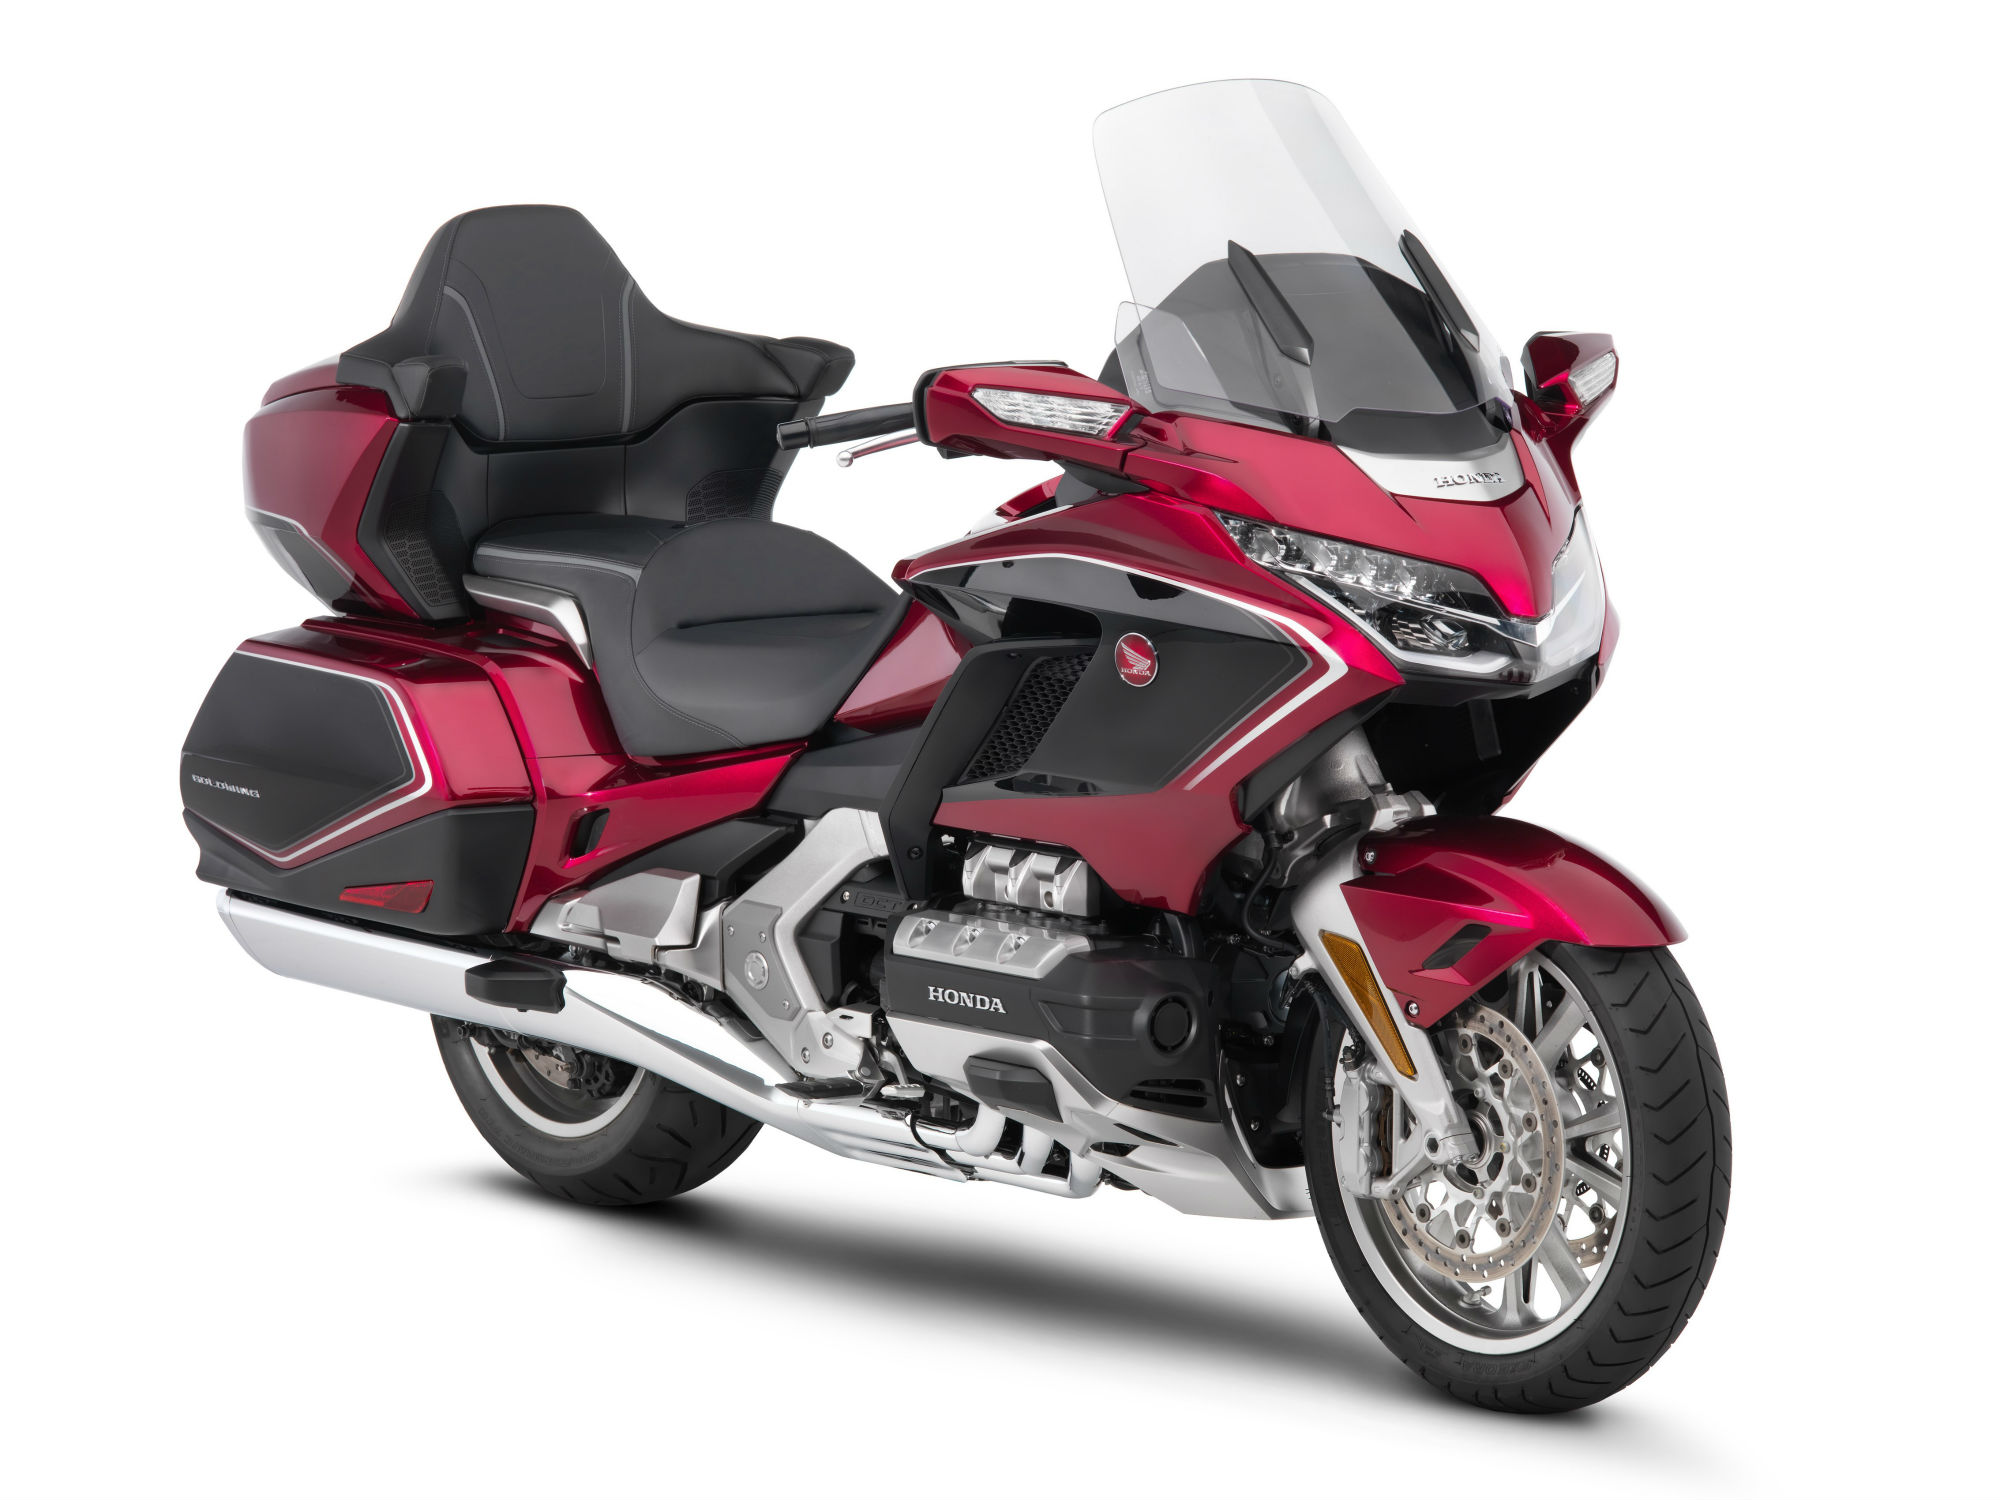 All-new Honda Gold Wing revealed | Visordown